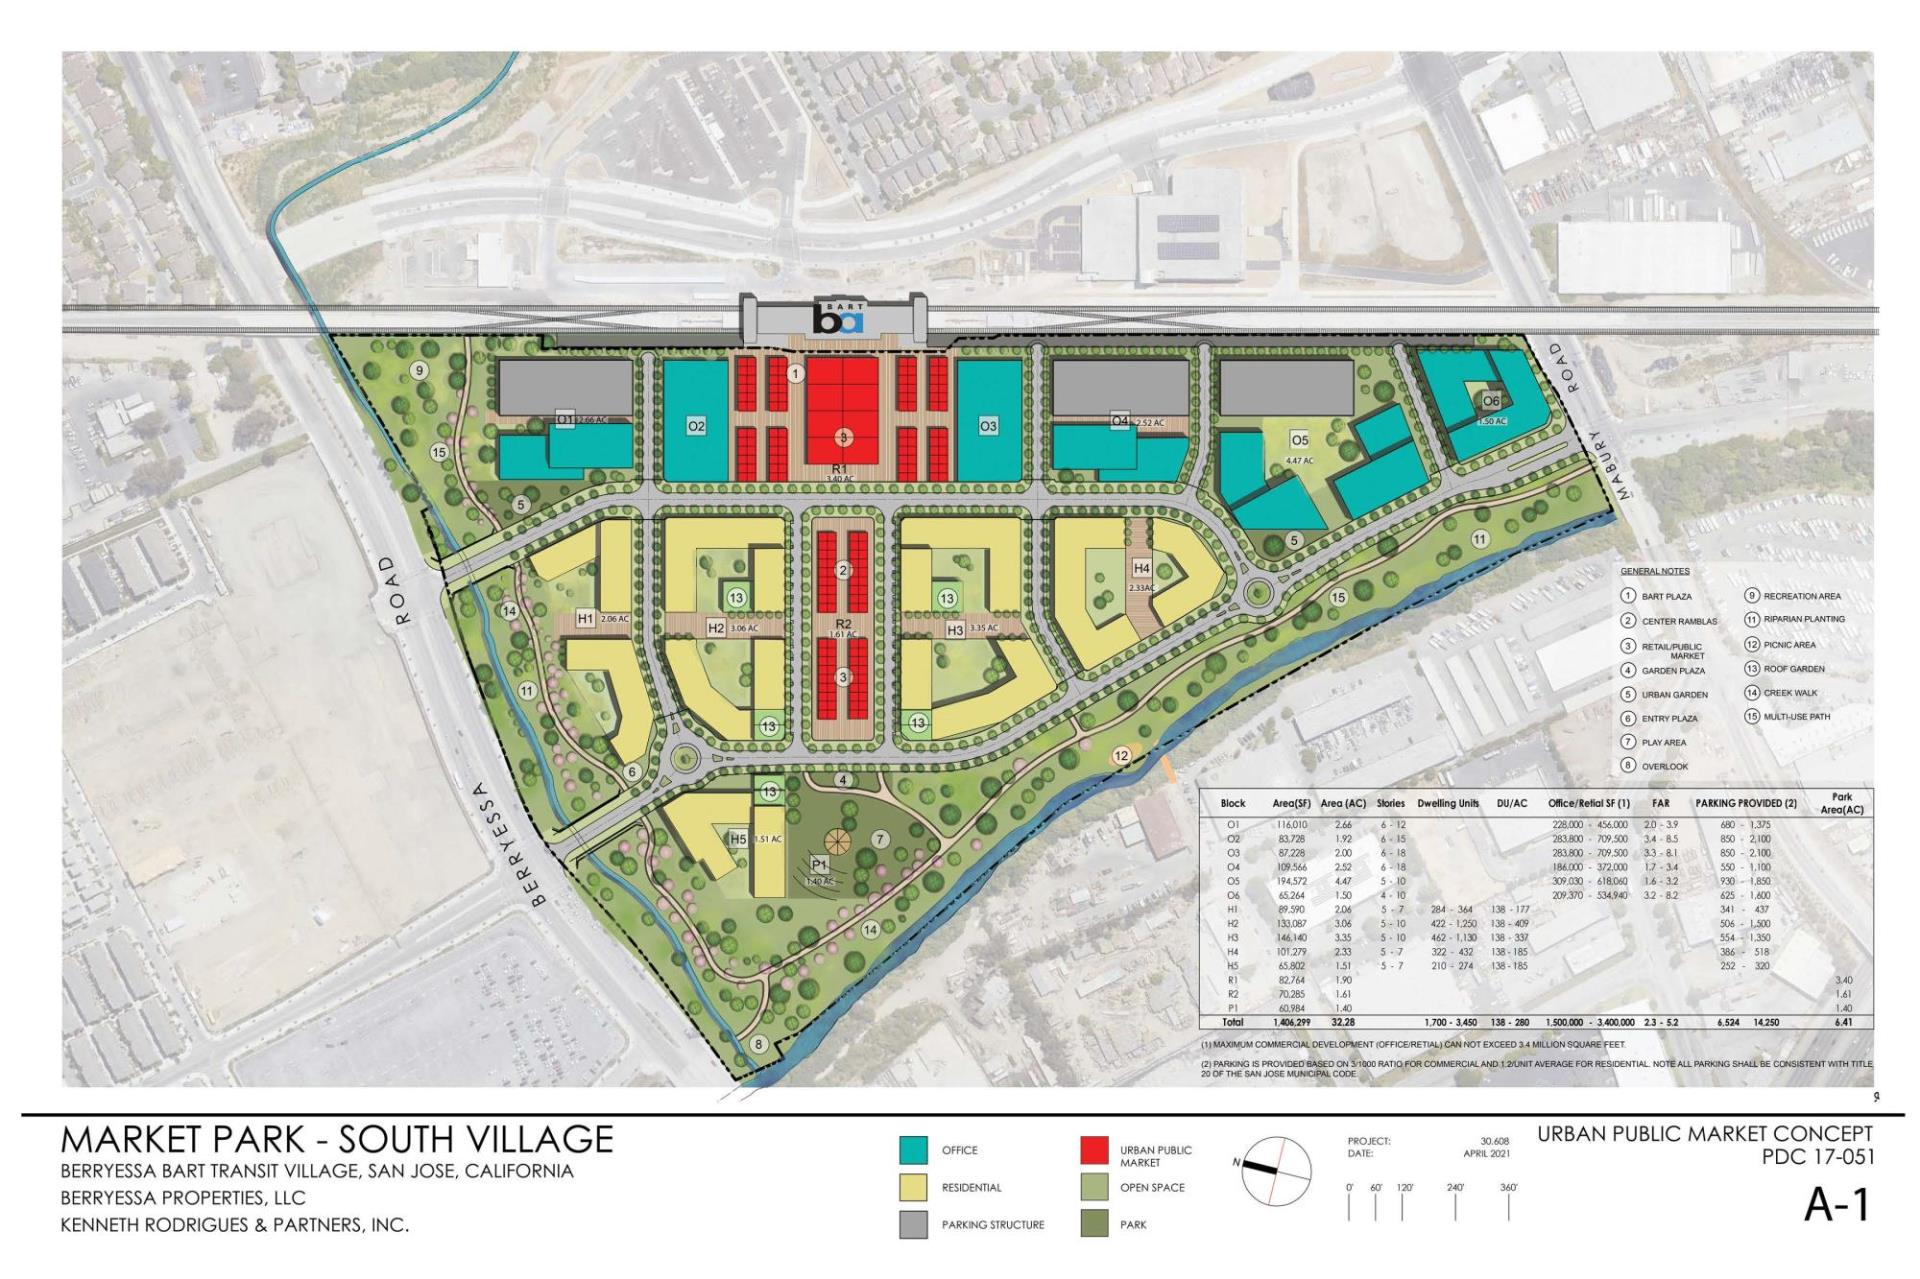 The concept map created by the both the developers and owners of the Flea Market site that shows what the property could look like with an urban village if San Jose approves its rezoning request. The Berryessa/North San Jose BART station is visible on the upper part of the map.